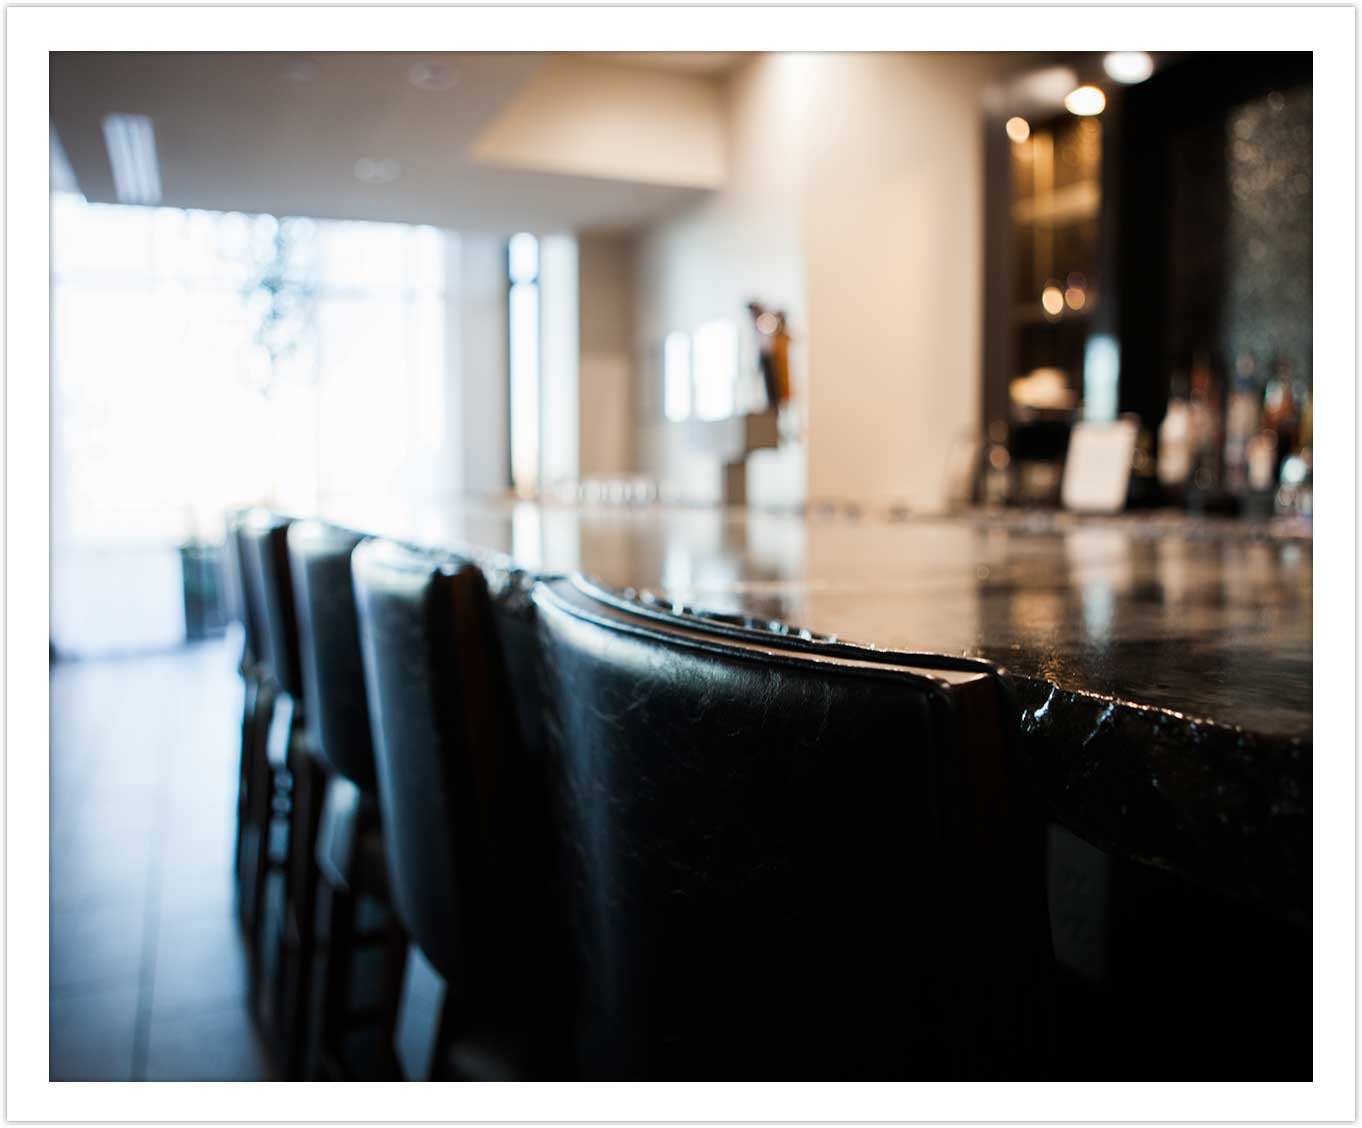 Beautiful Image of the Bar at Arbor Hotel and Conference Center Lubbock Texas